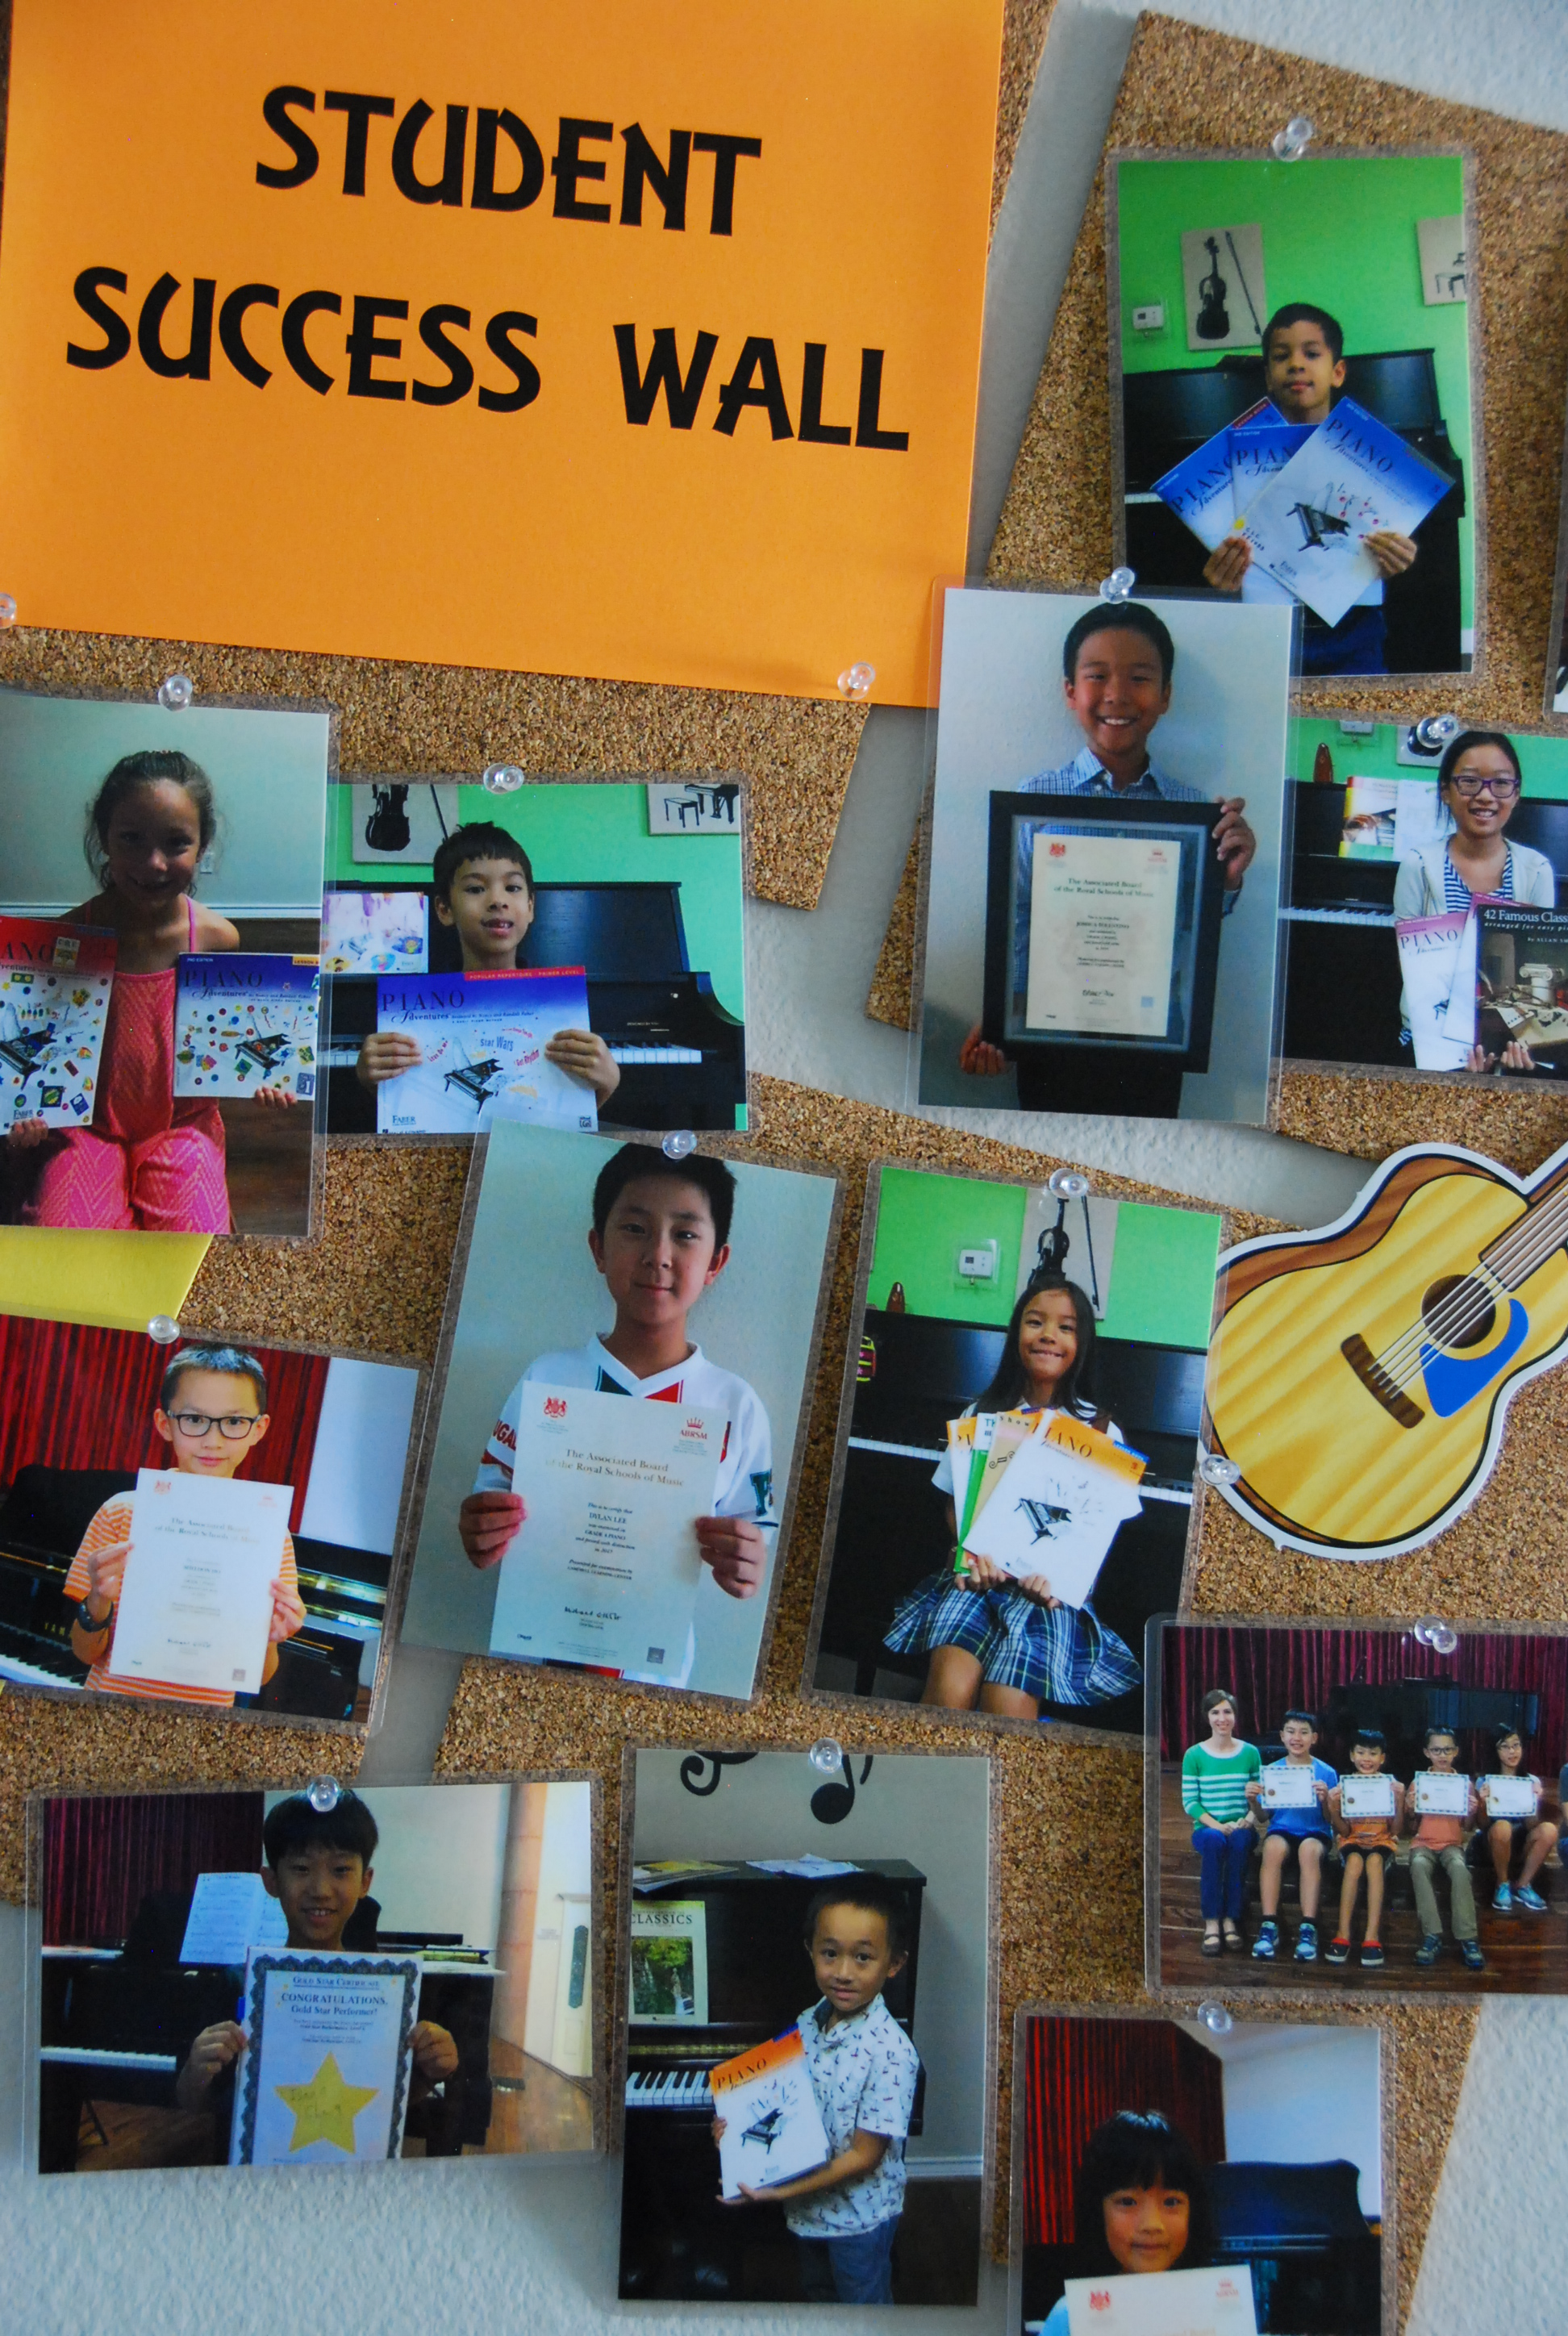 Student Success Gallery